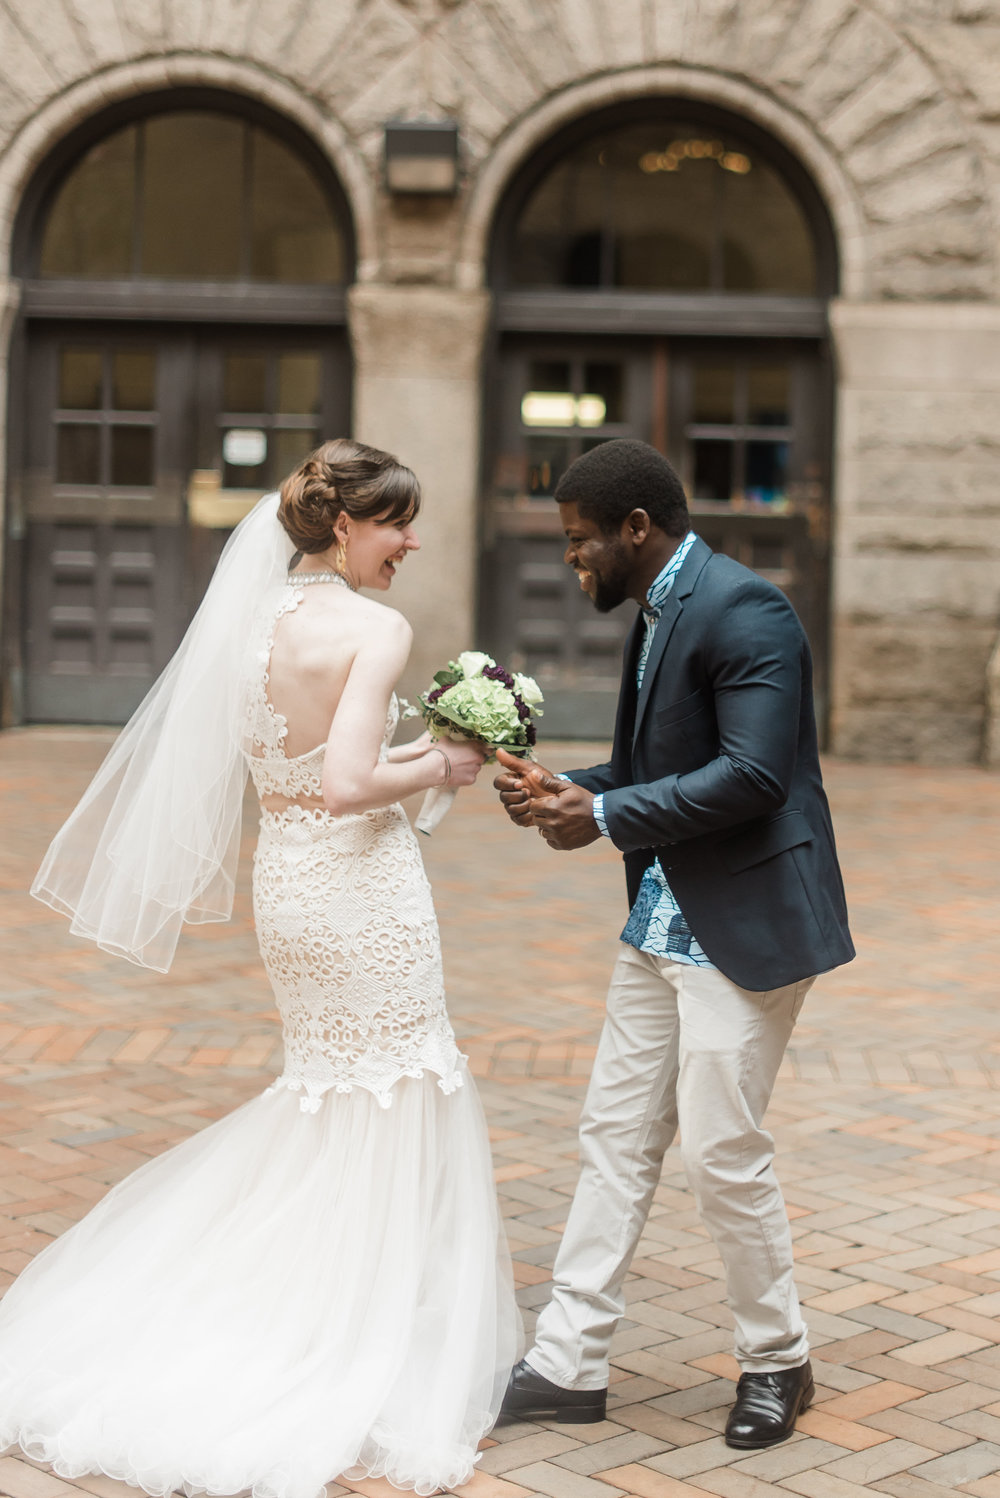 pittsburgh-wedding-photographer-elopement-courthousewedding-downtown-city0312.jpg